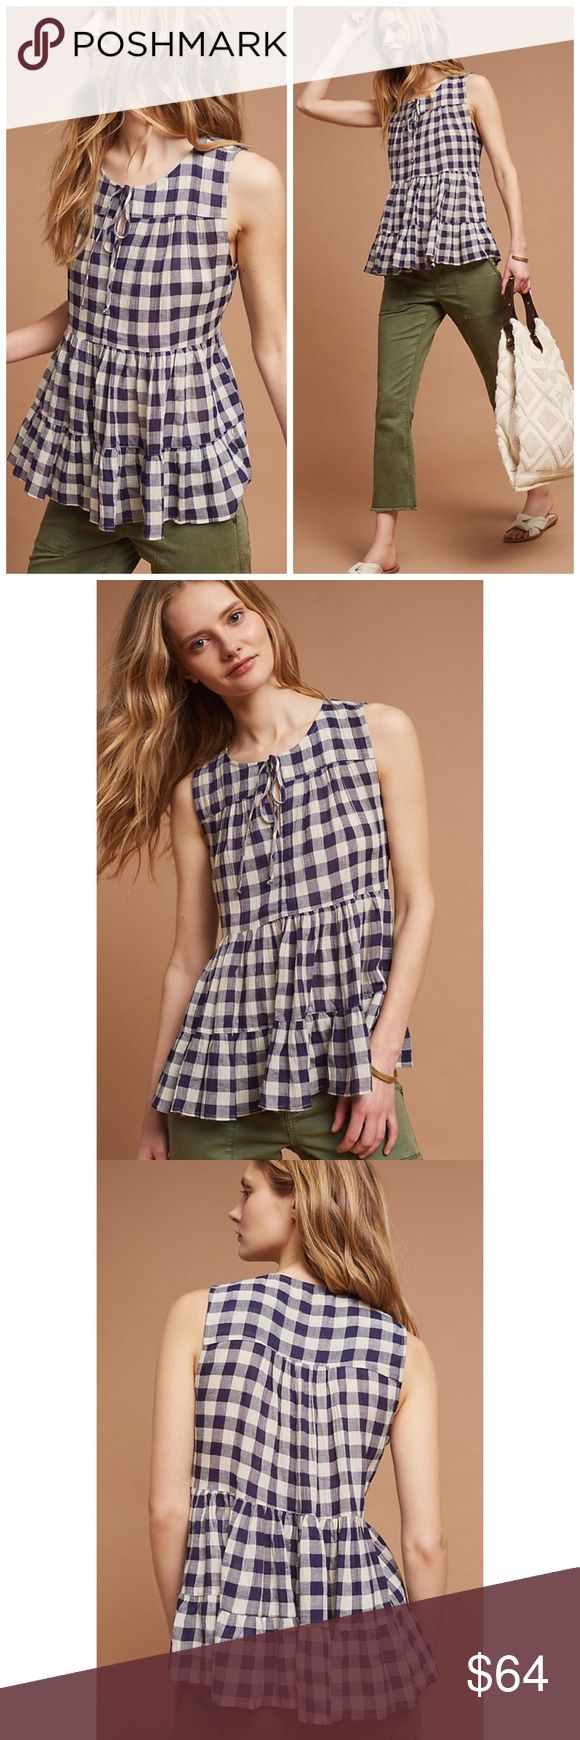 """Anthropologie Tylho Skirted Gingham Peplum Top Details:  This ruffled top features an on-trend gingham print that's layer ready for fall. From Tylho. •Size: Medium •Color: Navy Gingham •Original Retail Price: $78 •Cotton, linen ◦Peplum silhouette ◦Tie-neck detail ◦Pullover styling ◦Hand wash ◦Imported •Style No. 4110392640002  Dimensions •Regular: 26""""L Anthropologie Tops"""